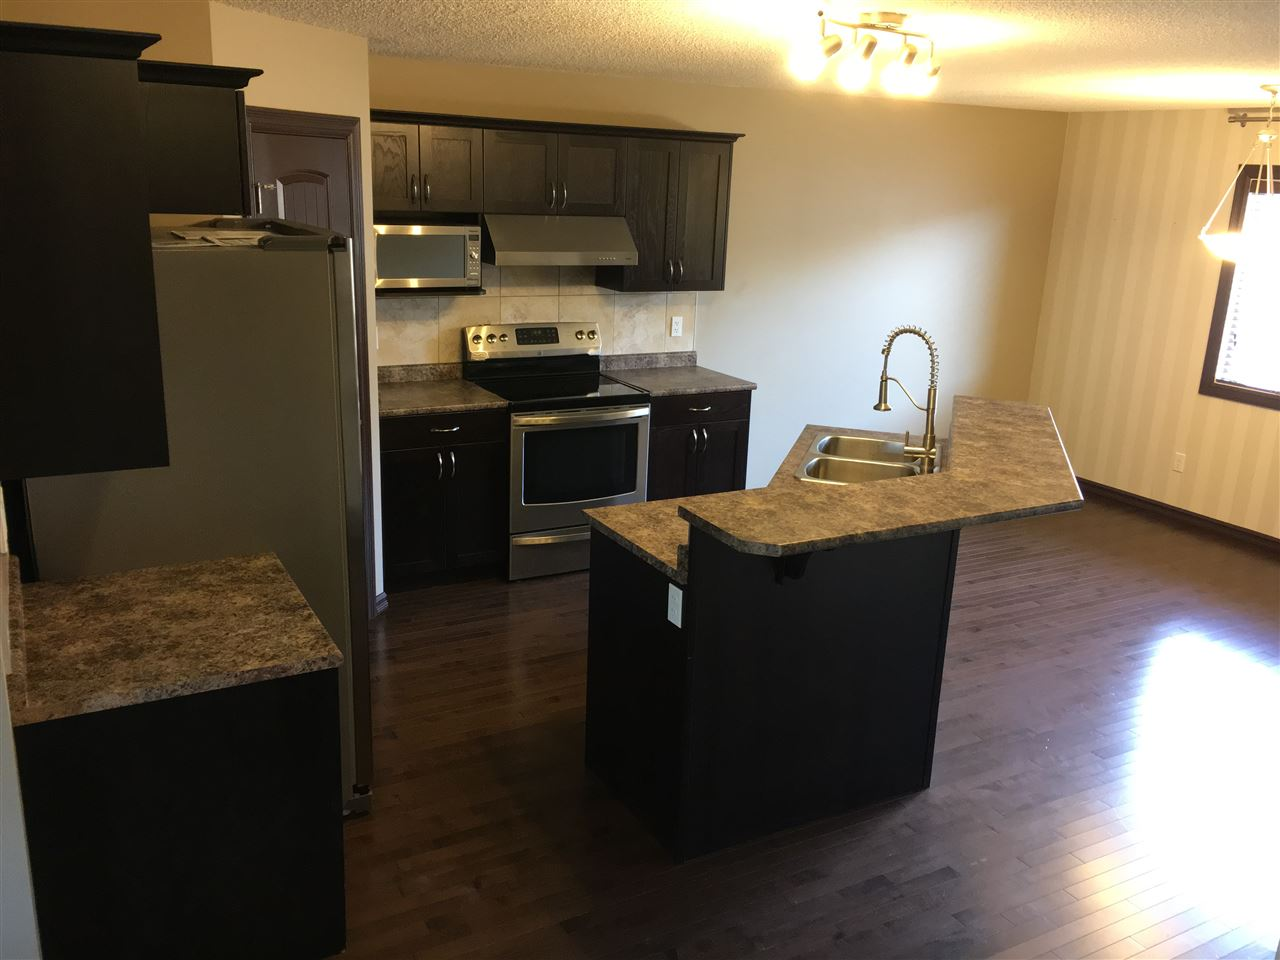 Generous Size Kitchen is open to the Large Dinette Area and Conveniently located next to the 2 Pce Powder Room and Back Entrance. Note the Gleaming Hardwood Floors, Feature Striped Wall, Windows with Custom Blinds & Contemporary Ceiling Light Fixture.